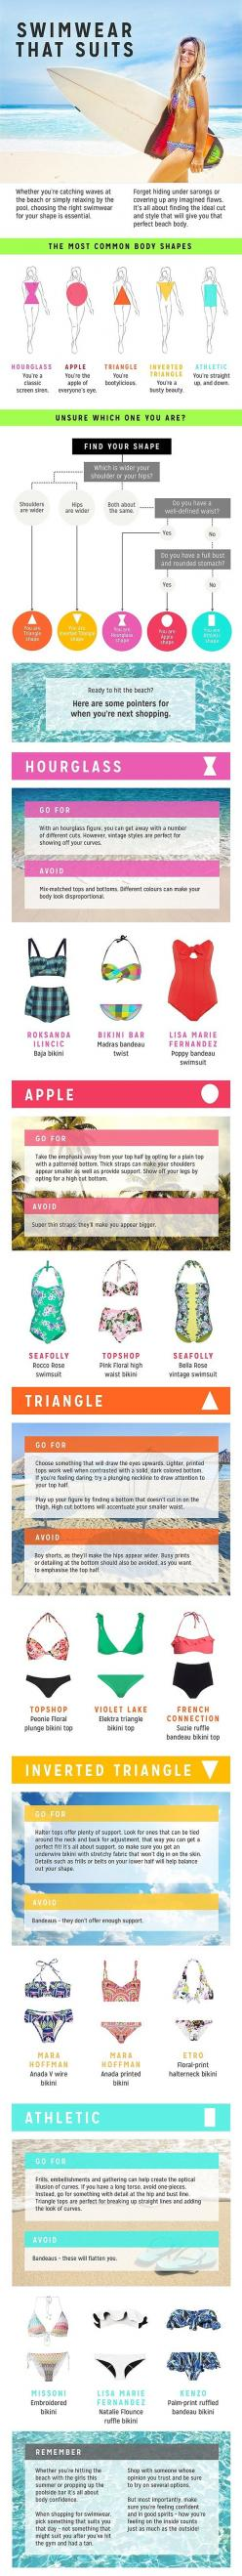 Infographic shows how to choose the RIGHT swimsuit for your body type #dailymail: Body Type, Beach Swimsuits, Choose The Right, Swimwear, Body Shape, Bikini, Infographic, Hourglass